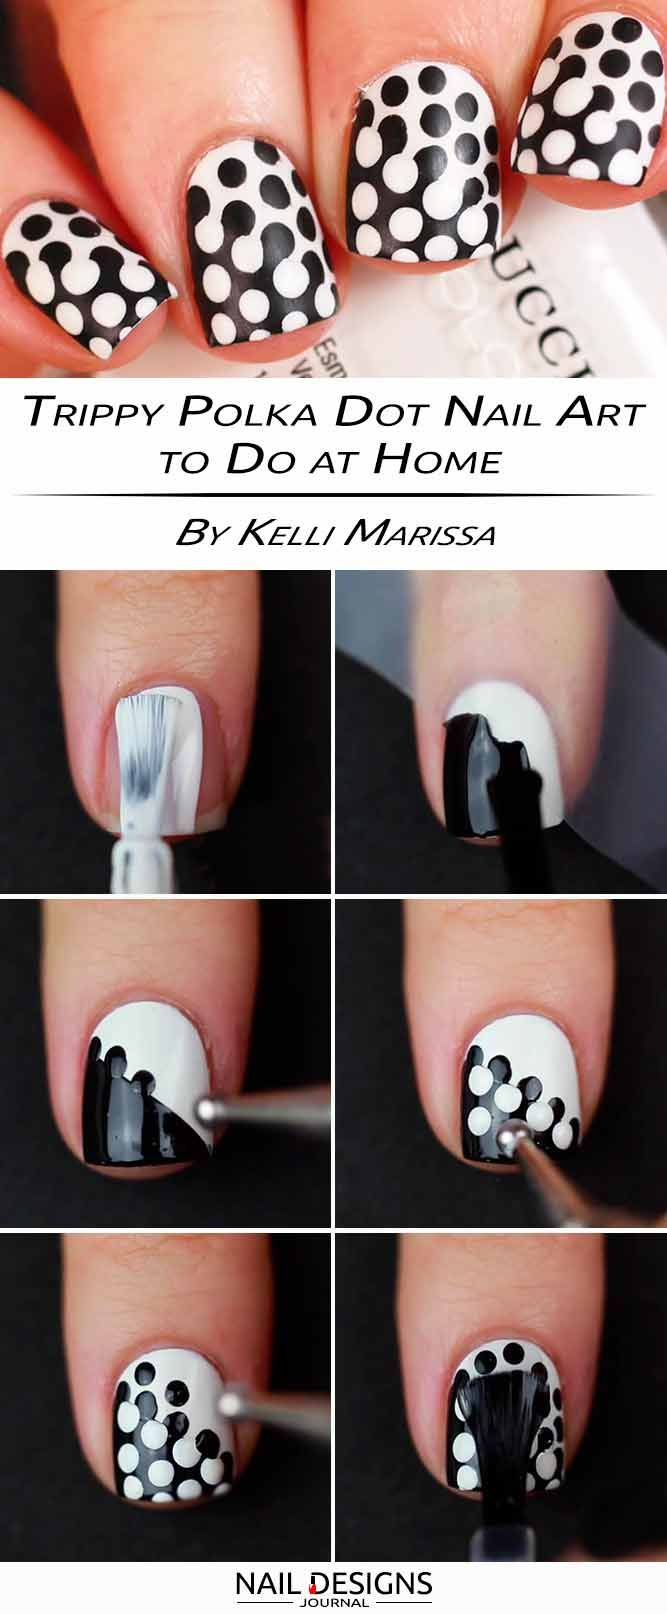 15 Step by Step Tutorials How to do Nail Designs at Home | Dot nail ...